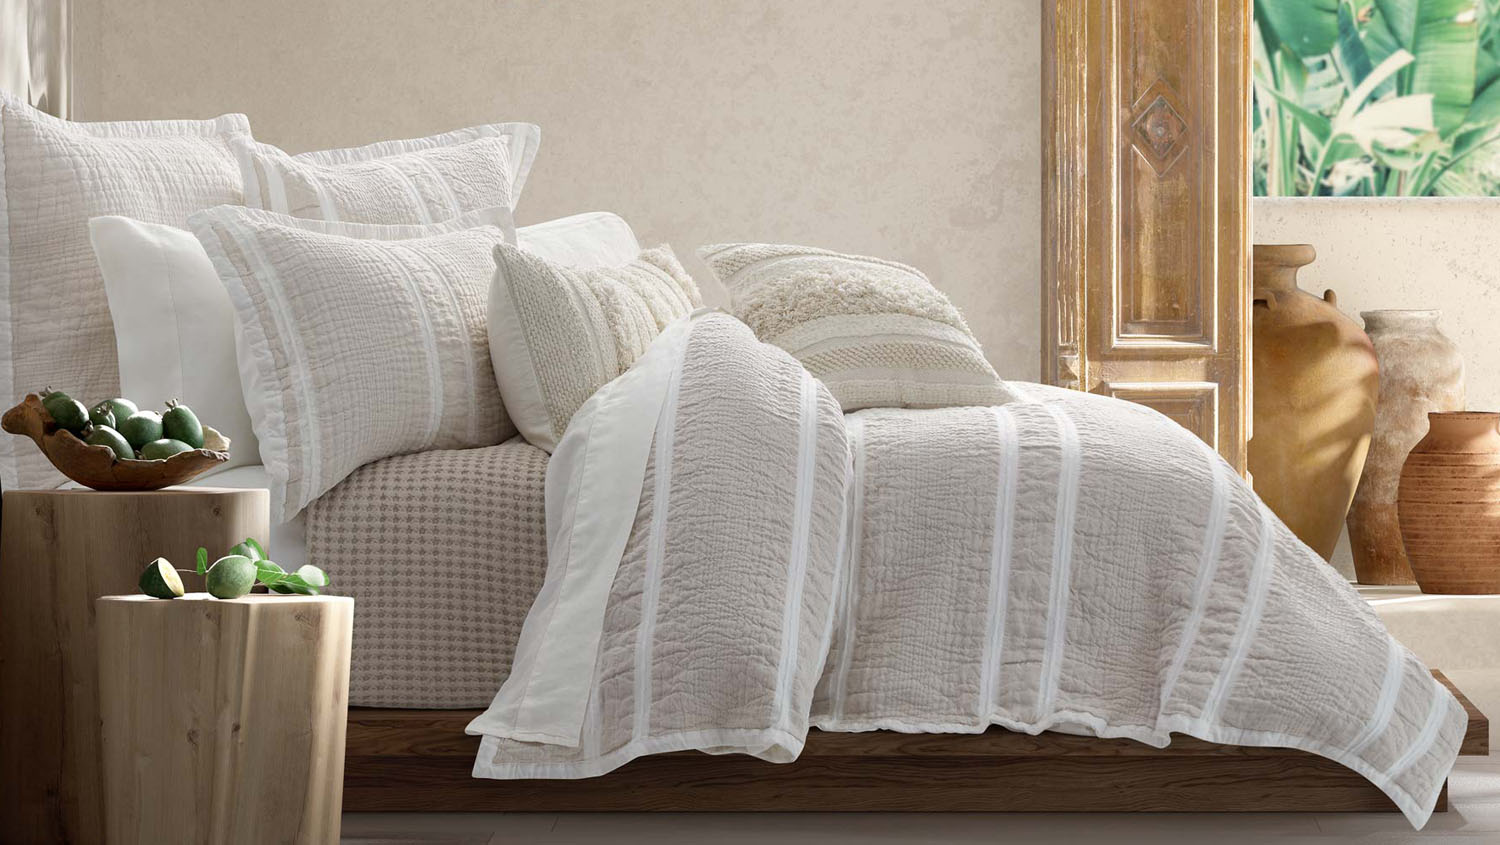 Lowest Prices on J.Queen New York Comforter Sets